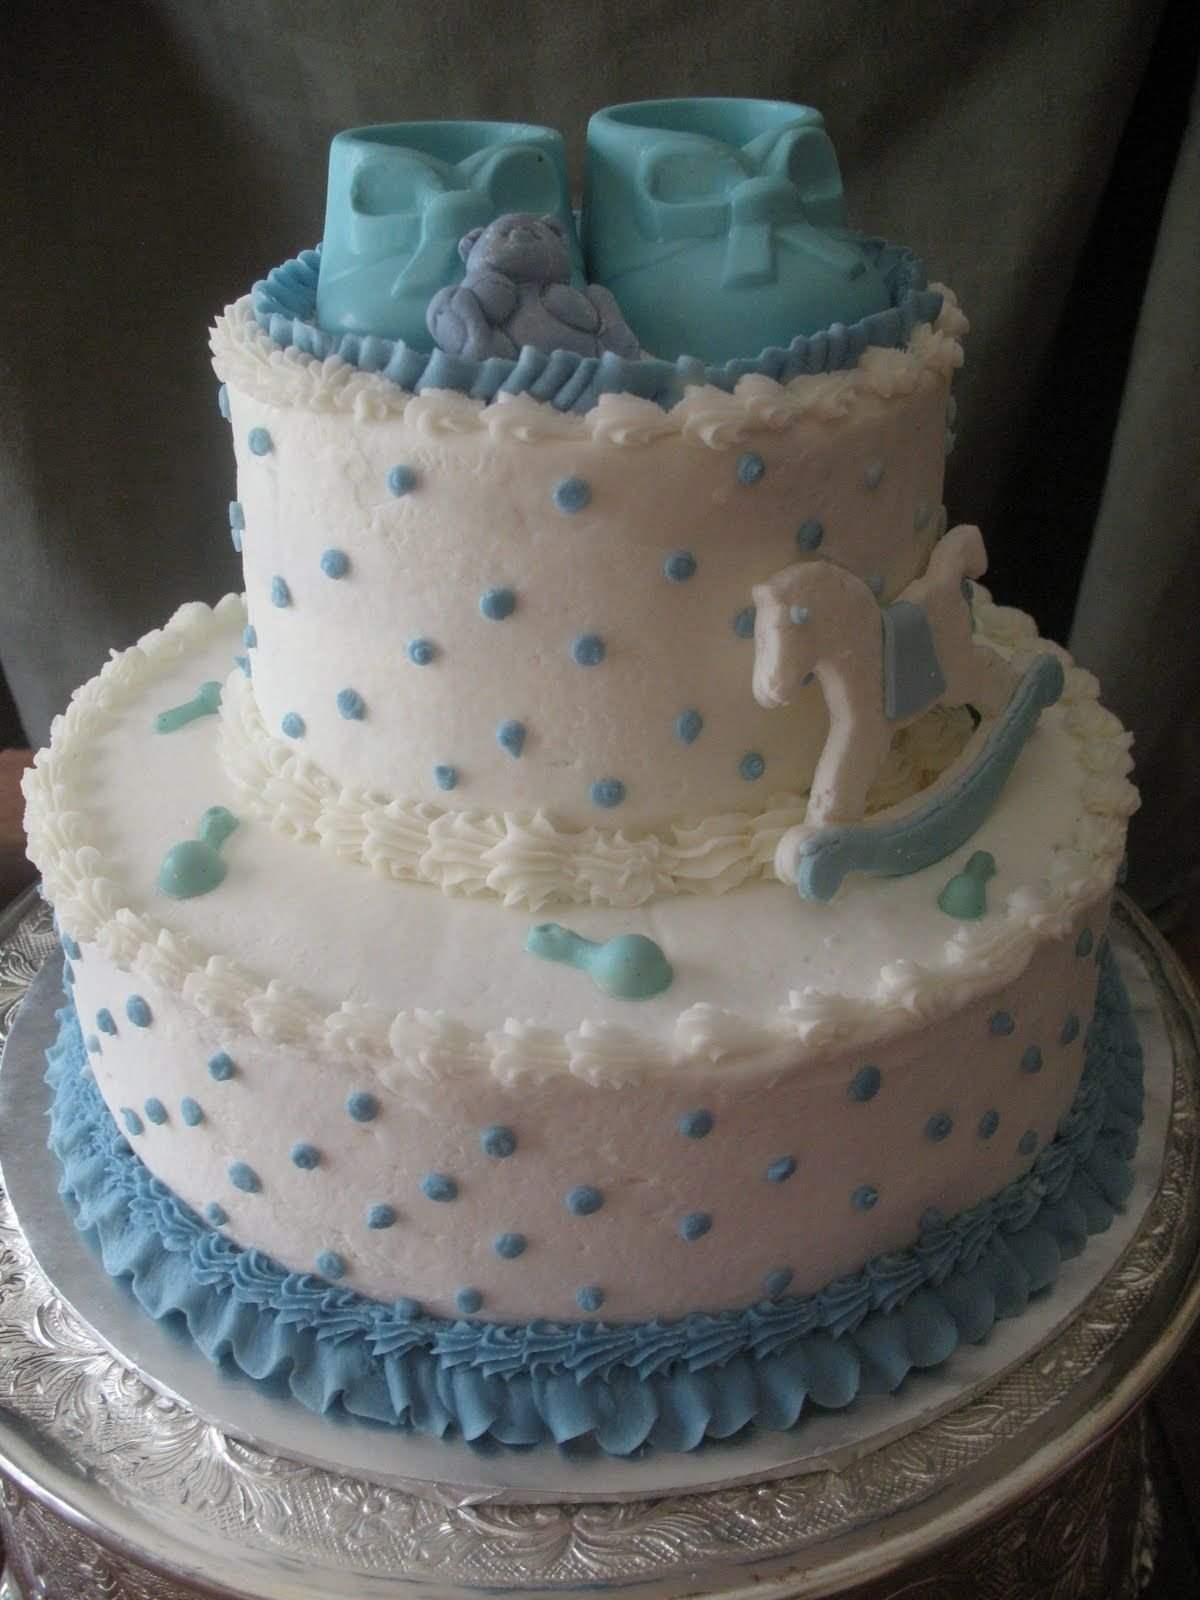 10 Awesome Baby Boy Shower Cake Ideas buttercream baby shower cakes this baby shower cake was an almond 1